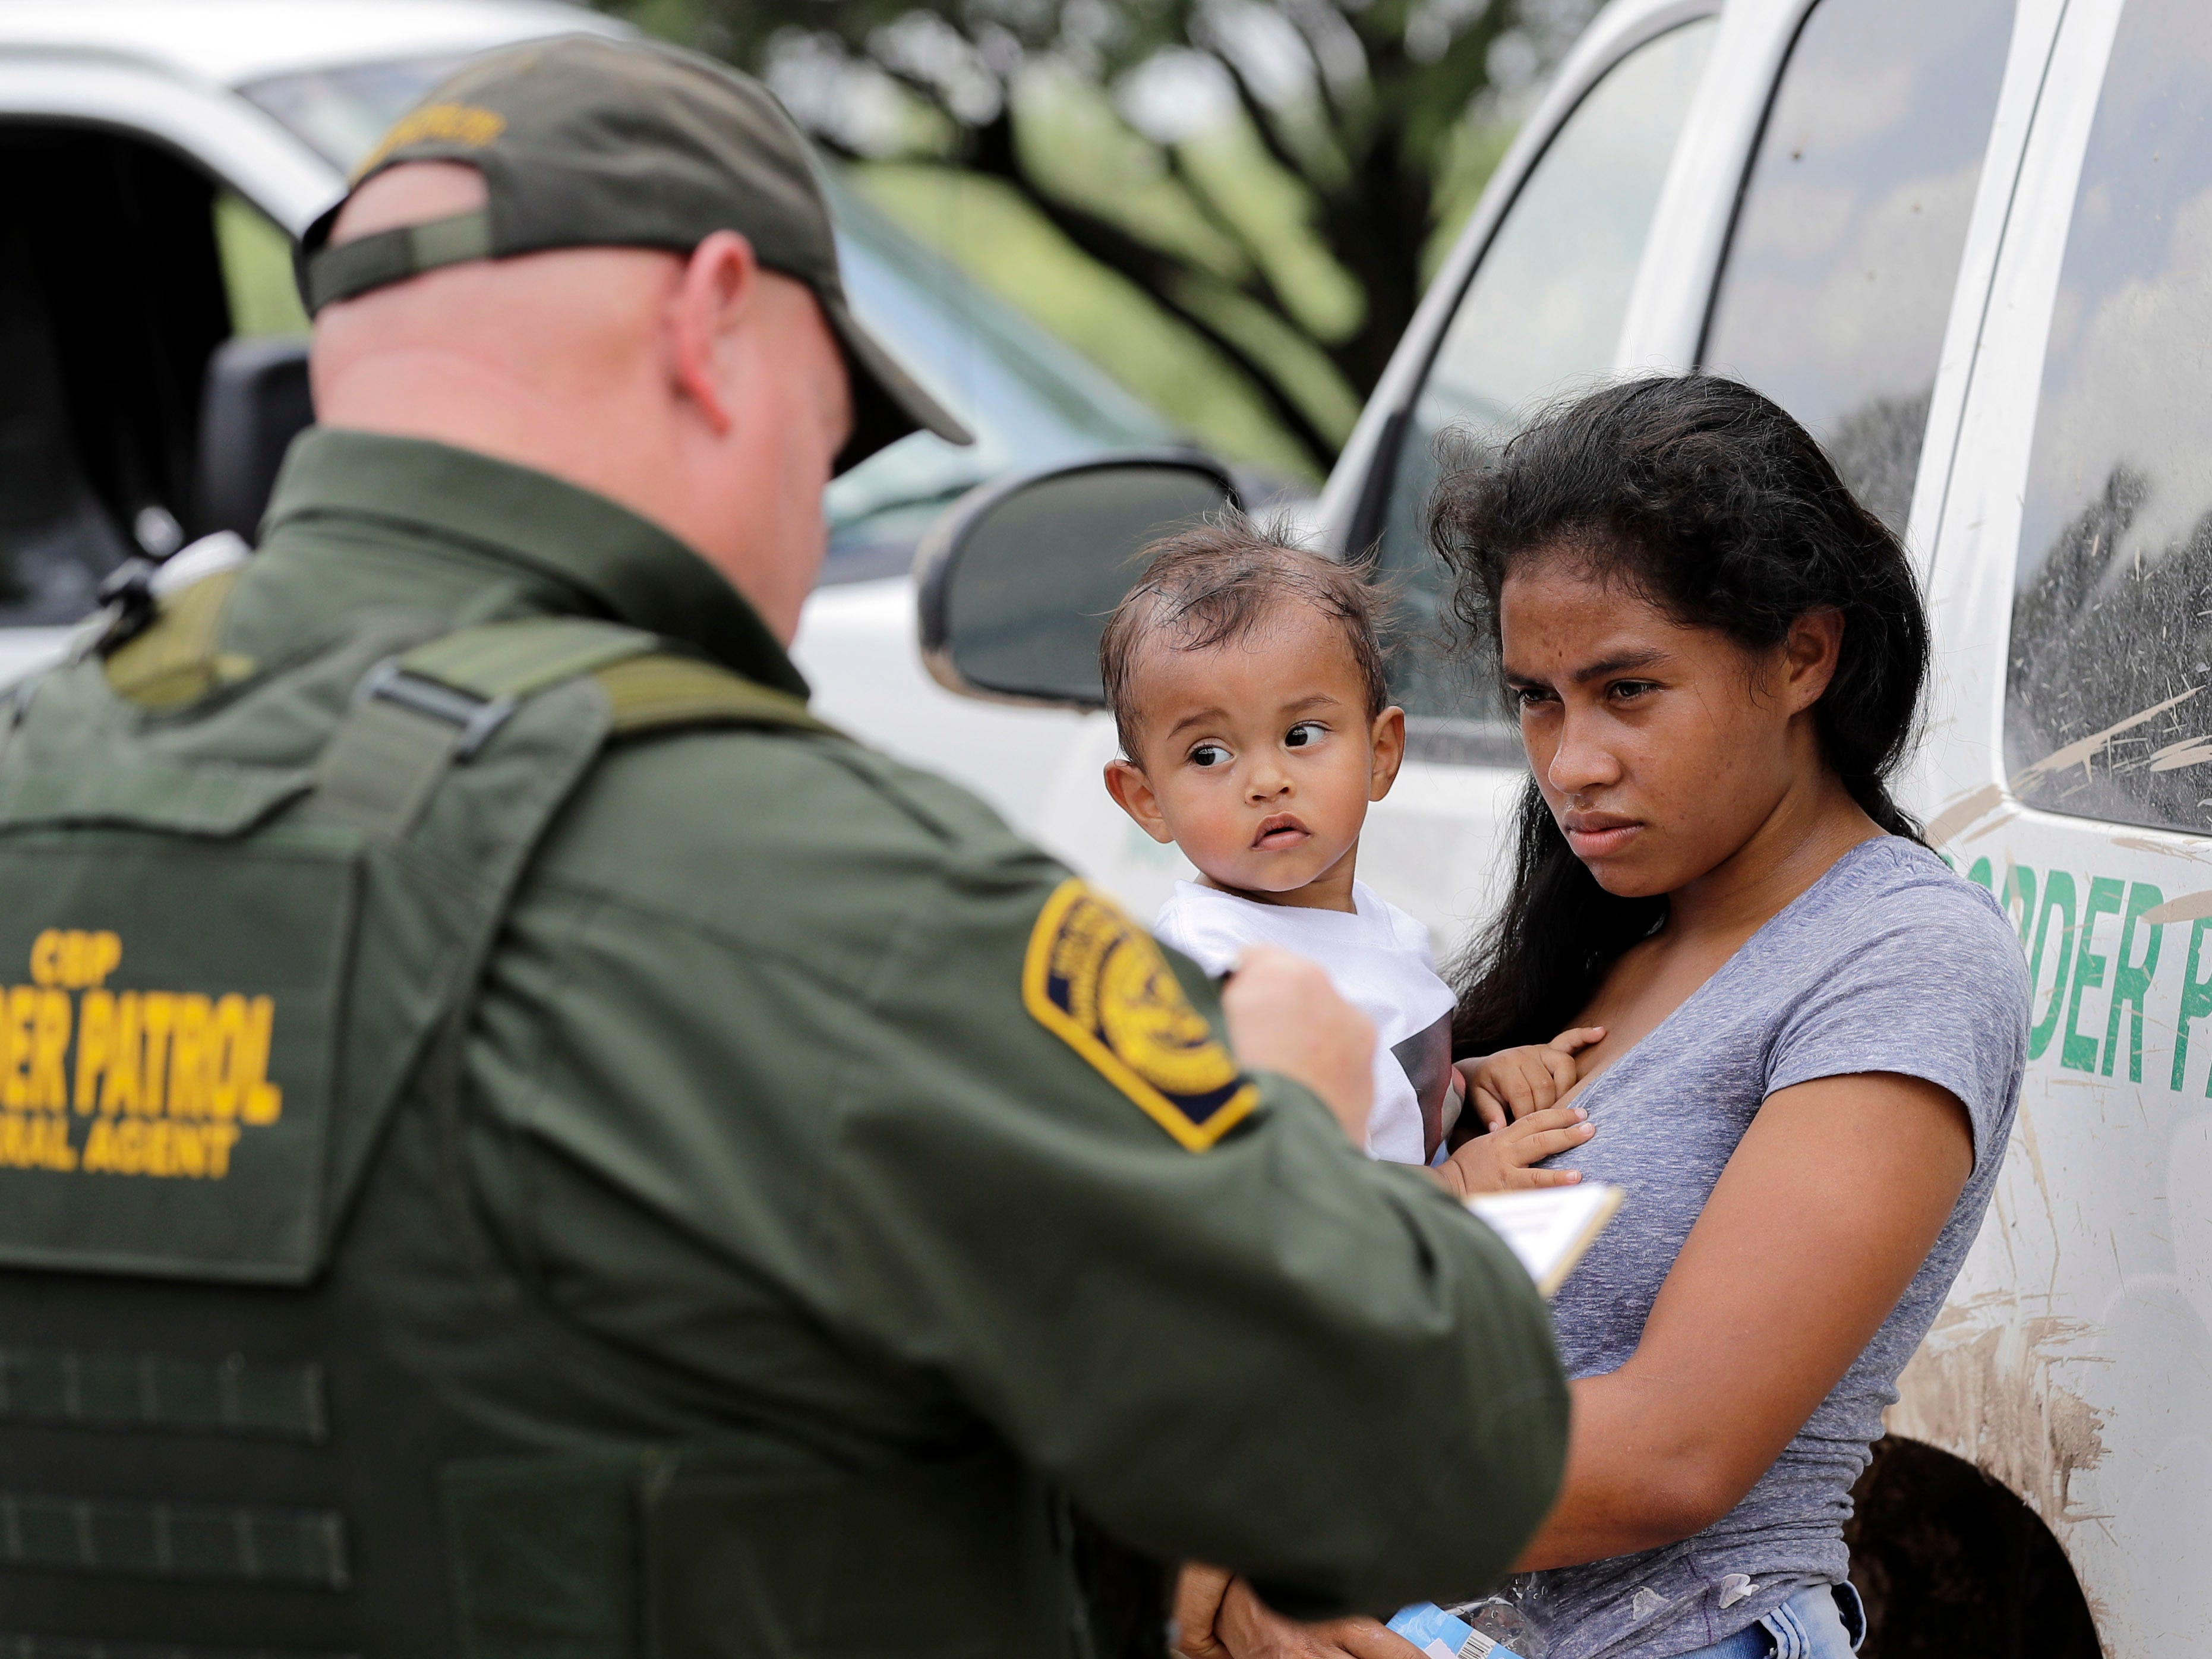 Judge may force Trump administration to reunite thousands more separated families